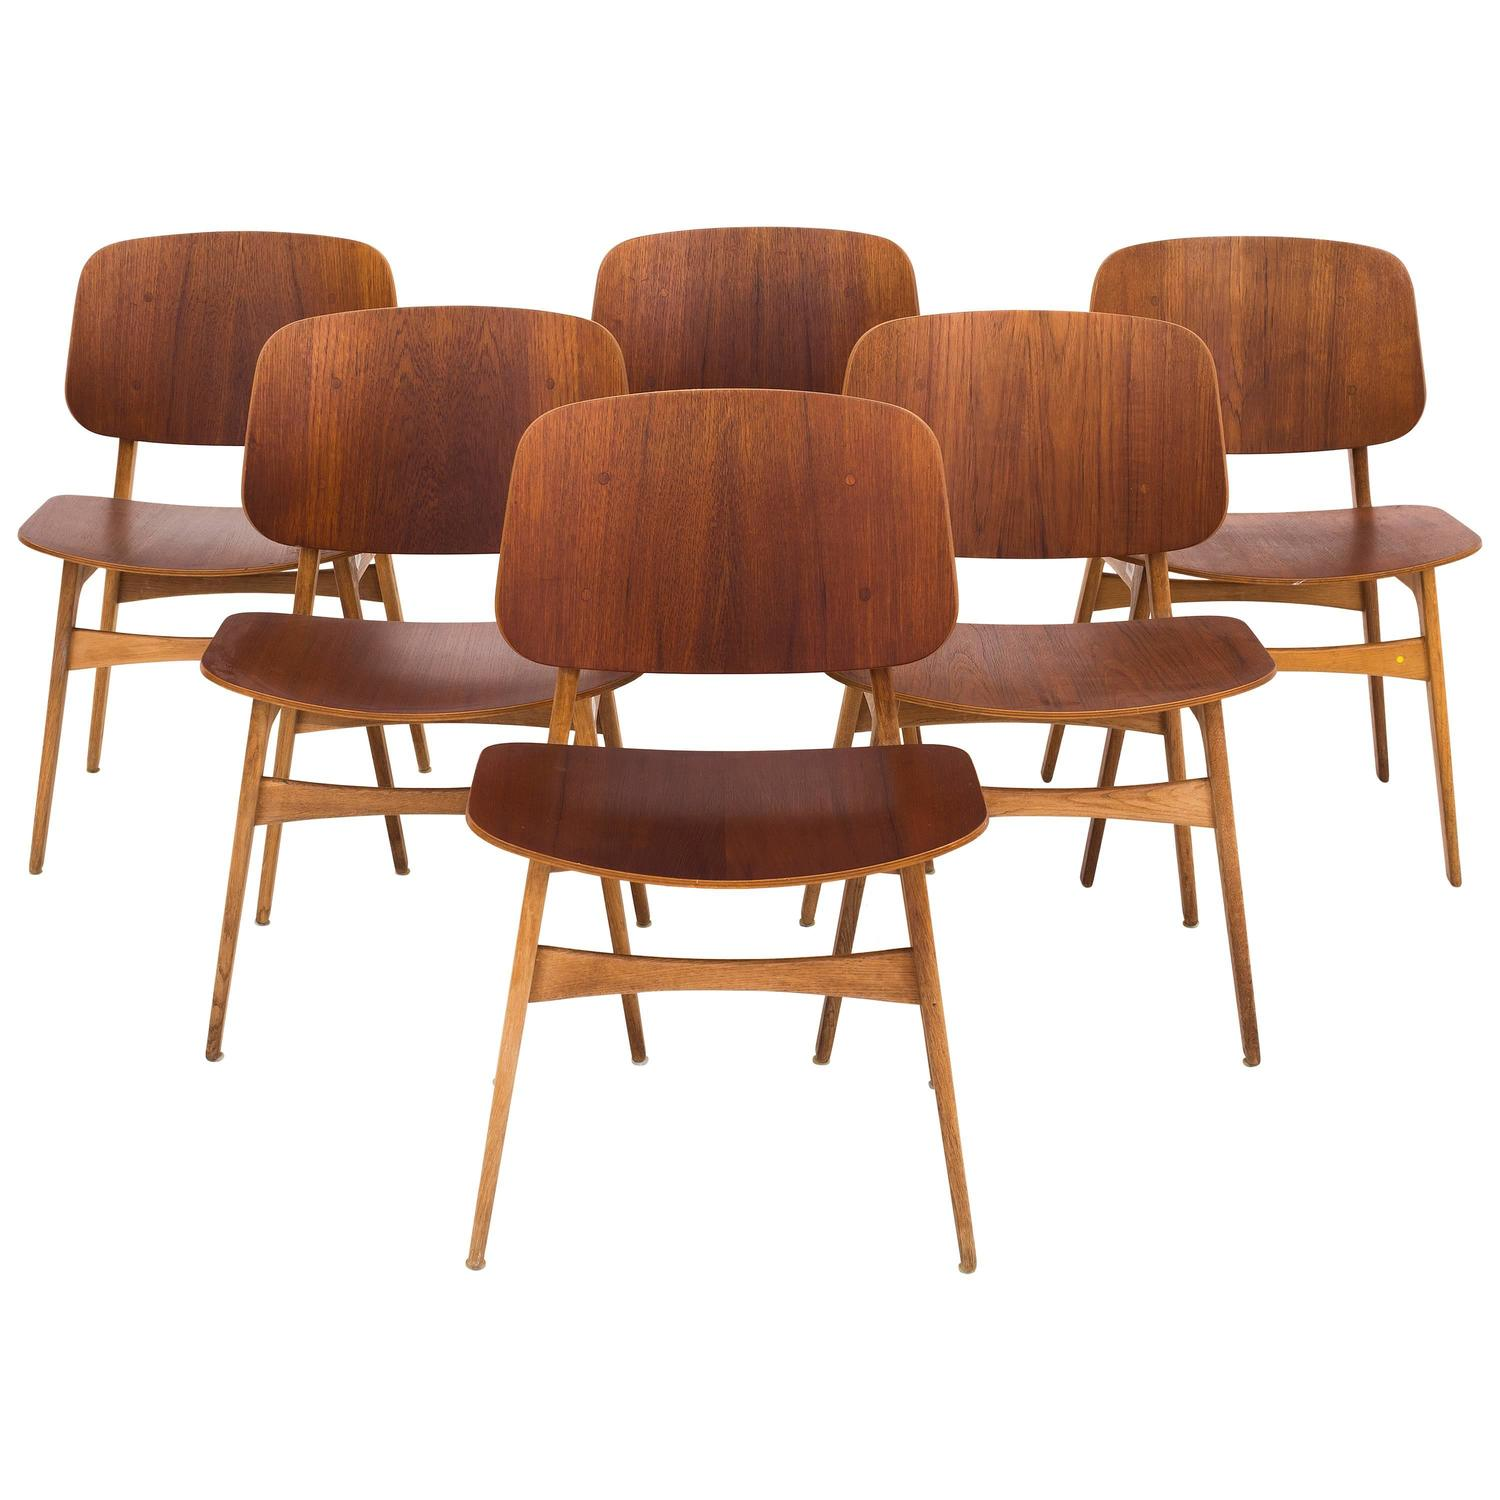 B¸rge Mogensen Dining Chairs Model 155 For Sale at 1stdibs